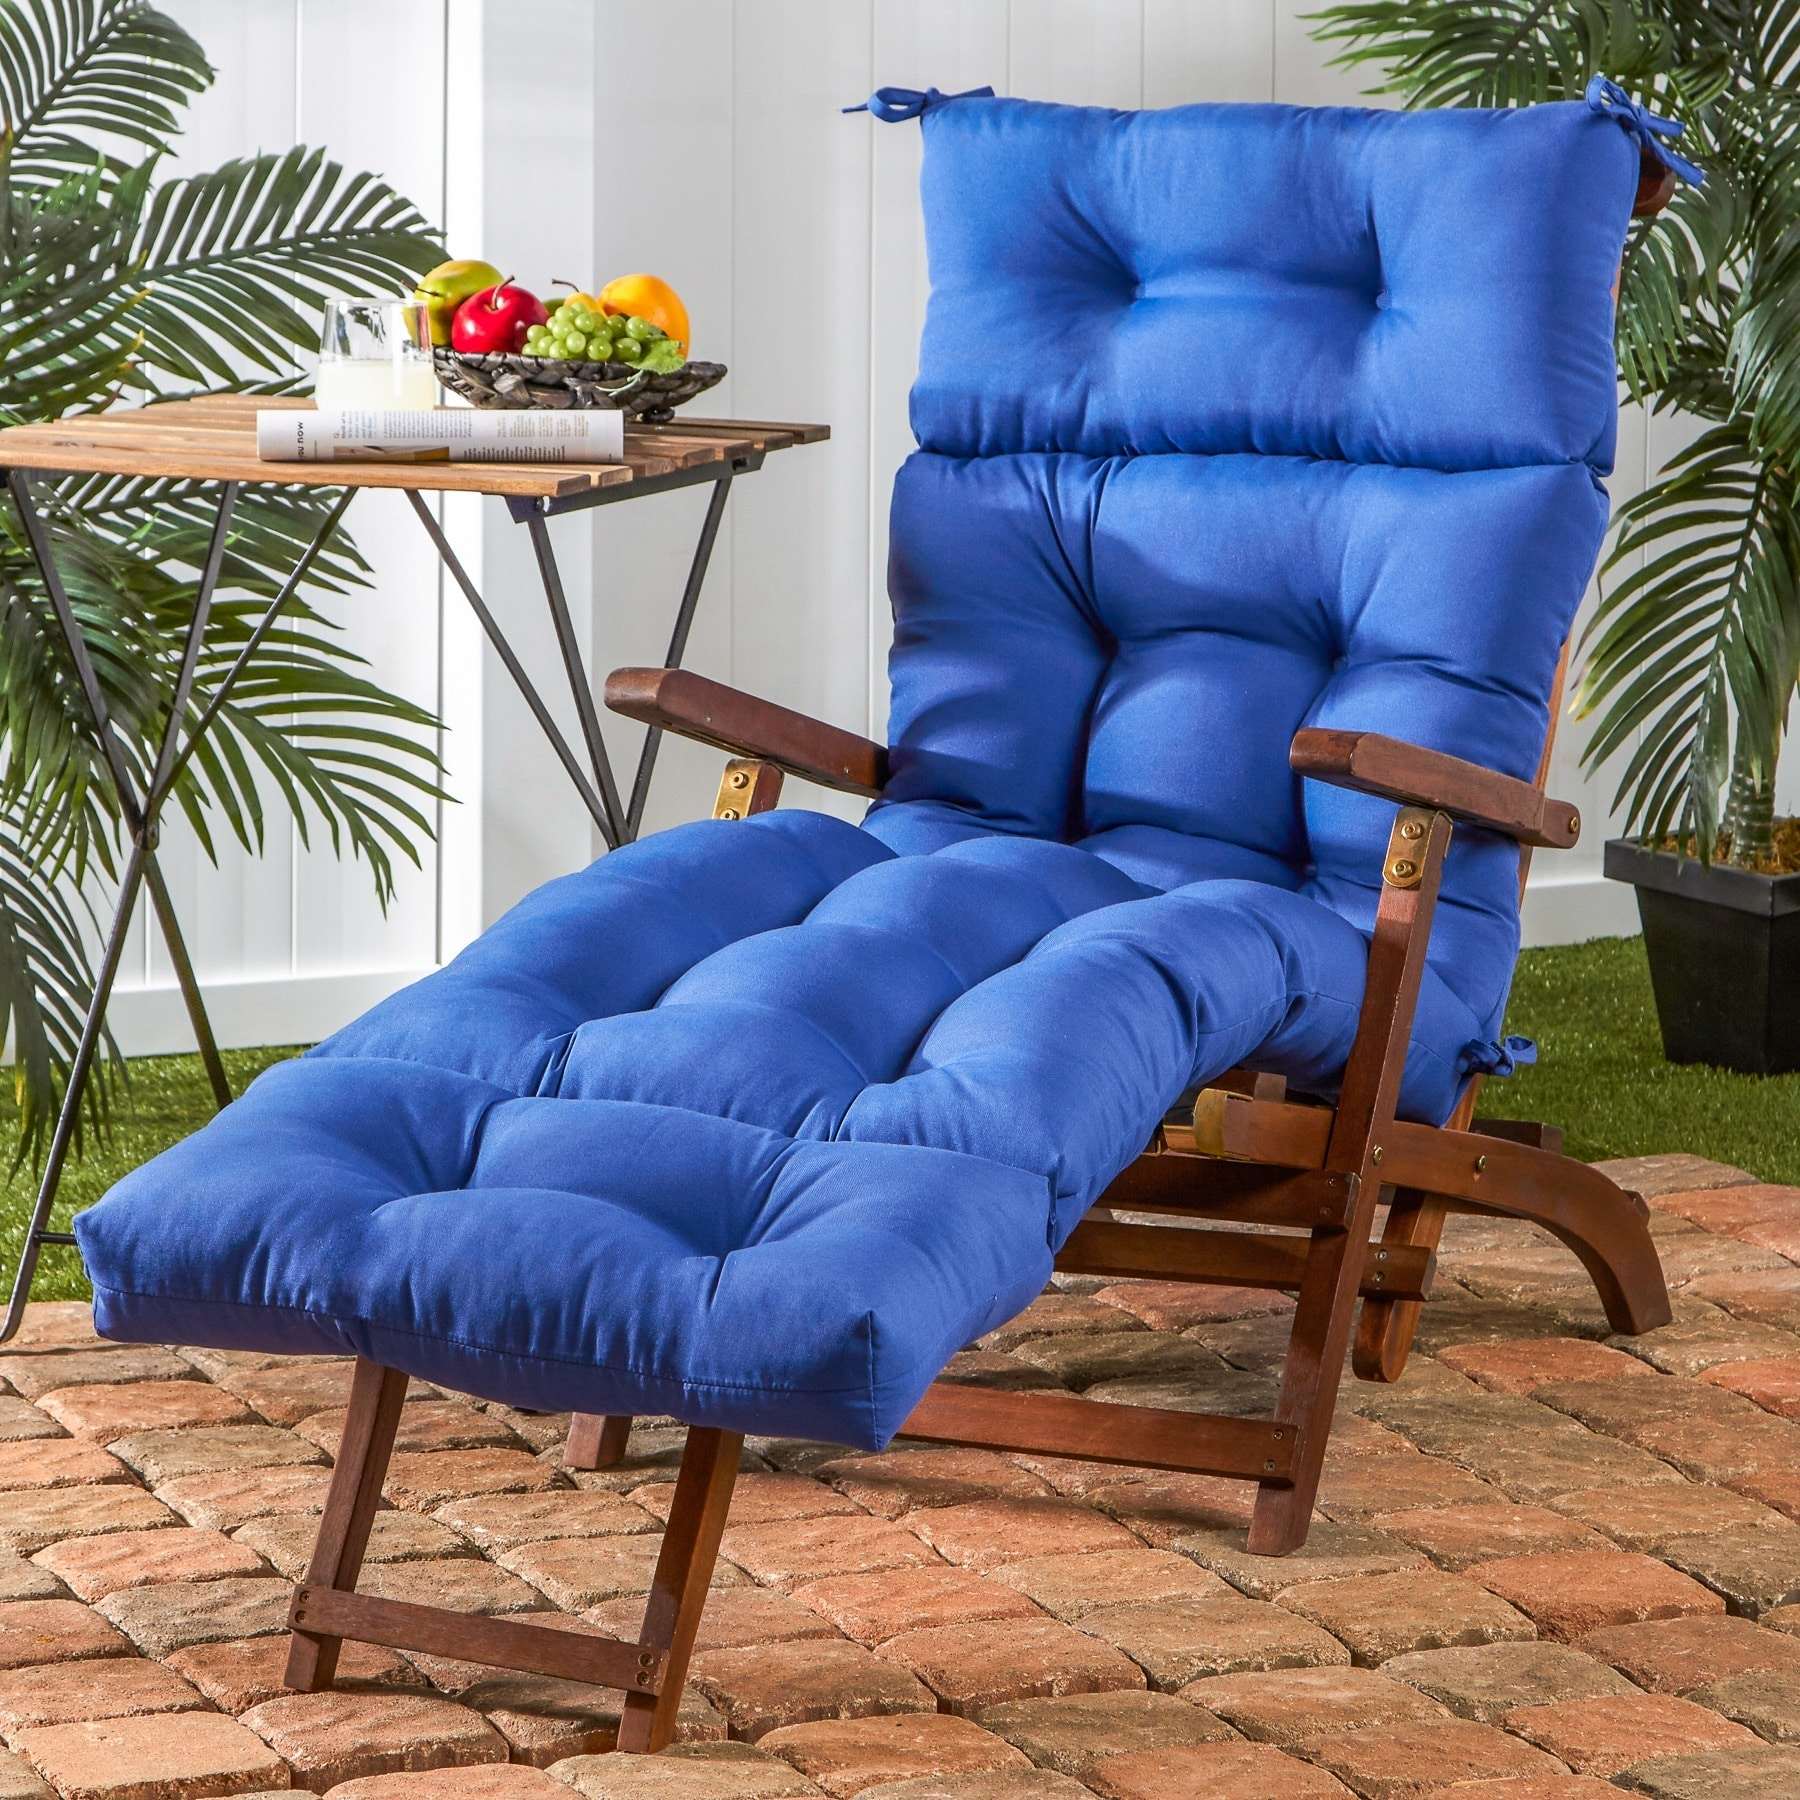 Greendale Home Fashions 72-inch Outdoor Marine Blue Chaise Lounger Cushion